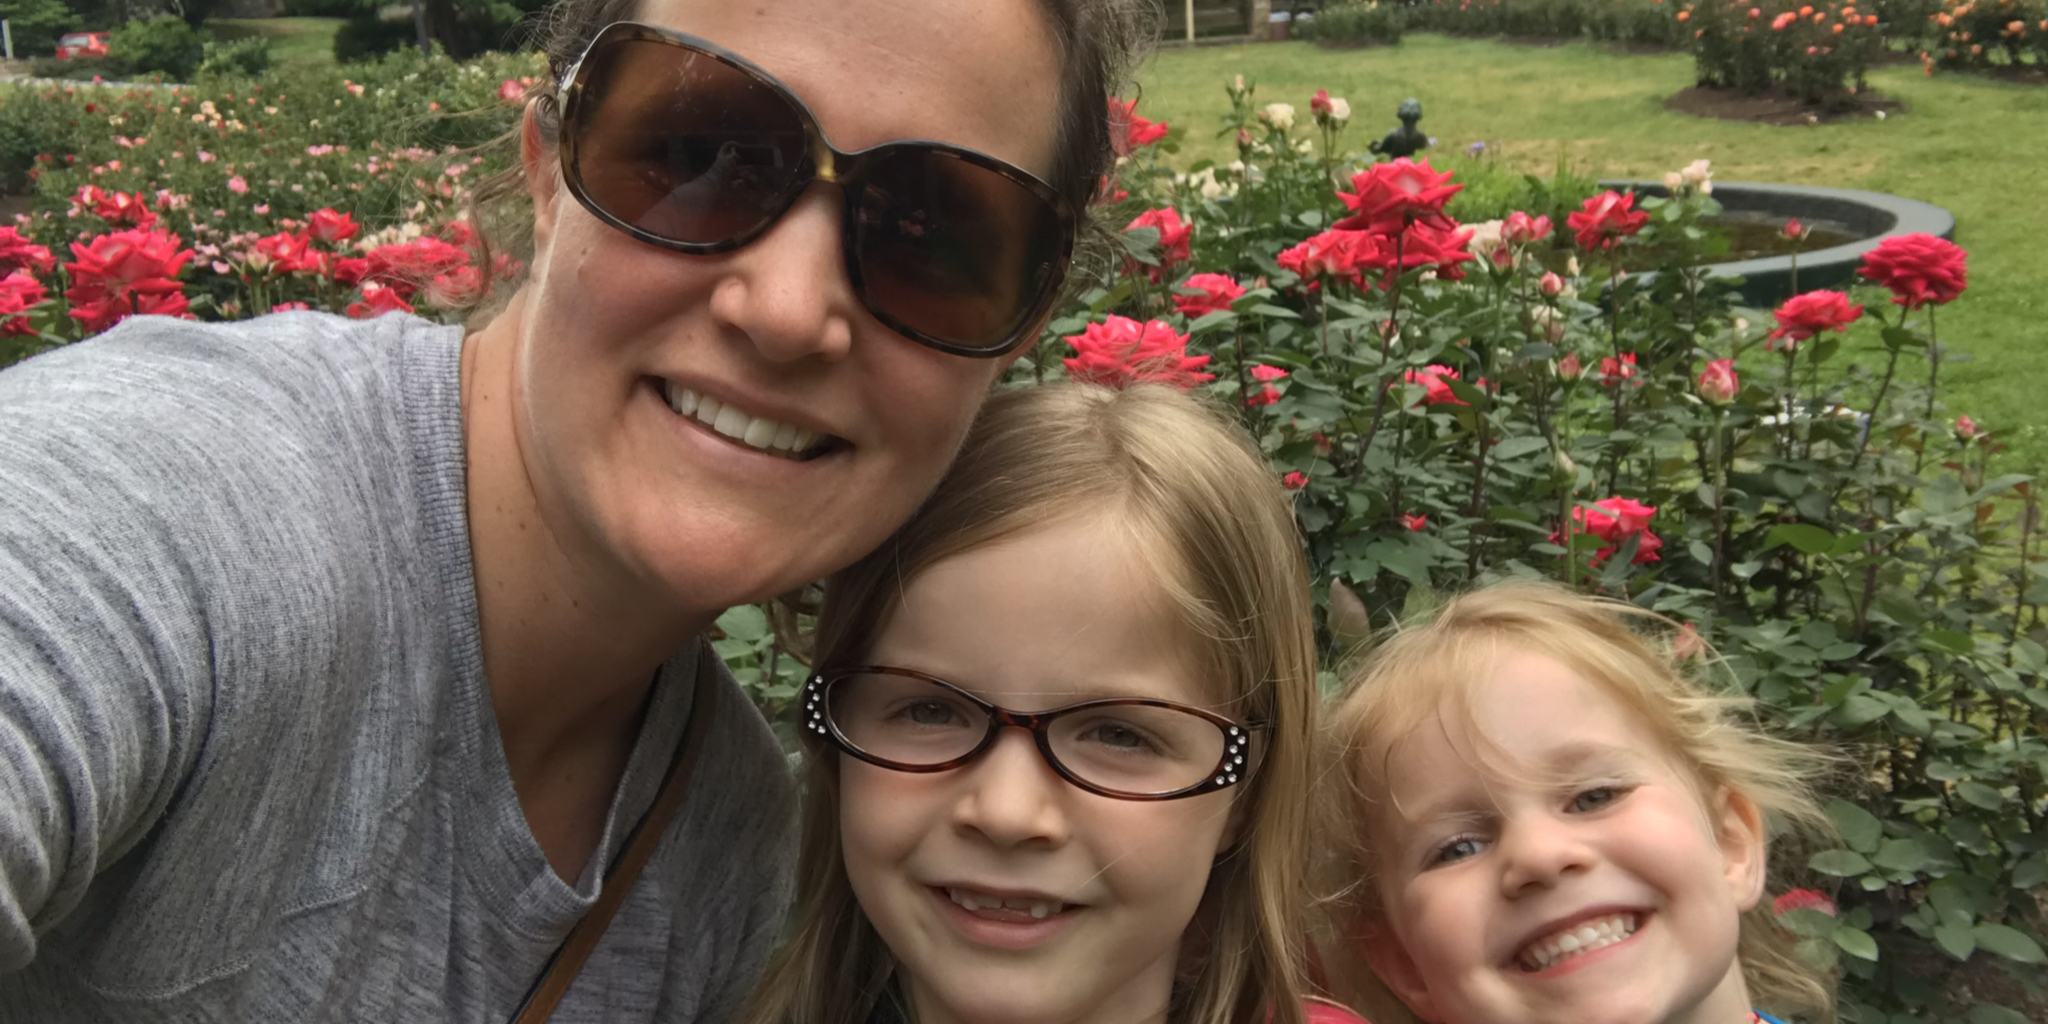 Top 10 Raleigh Parks for Mother\'s Day Pics - raleighparks.org